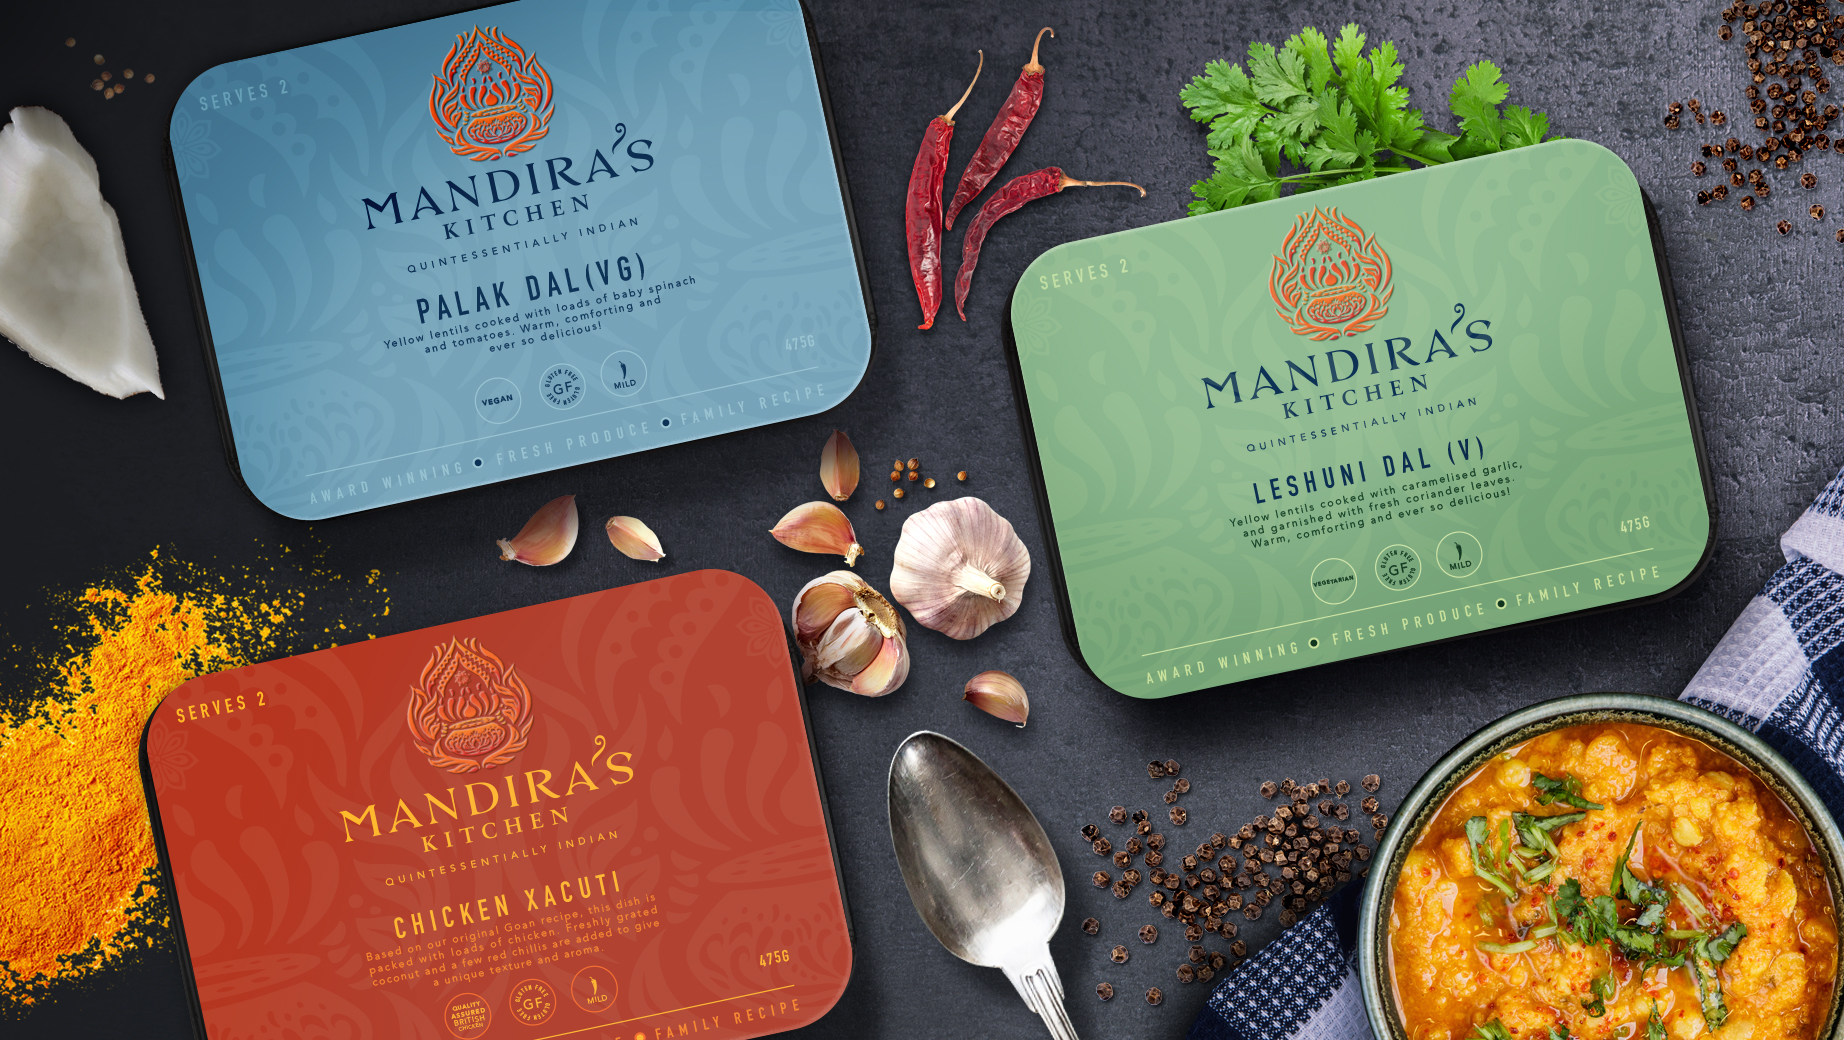 Mandiras Kitchen_RANGE_TOP DOWN_WF.jpg